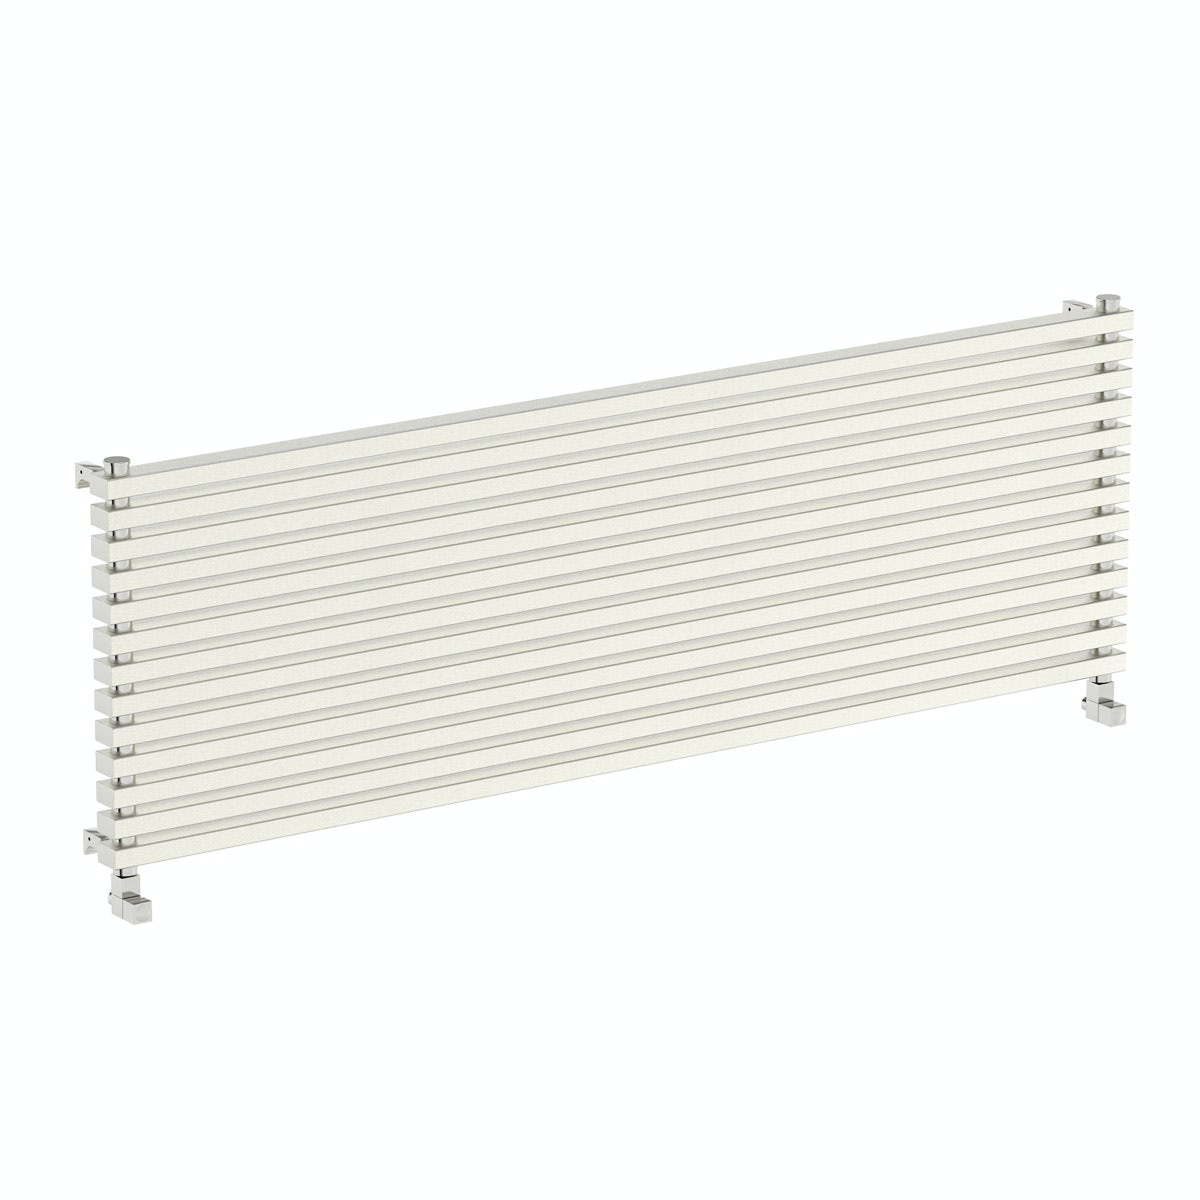 Mode Cadence horizontal radiator 600 x 1800 - Sold by Victoria Plum